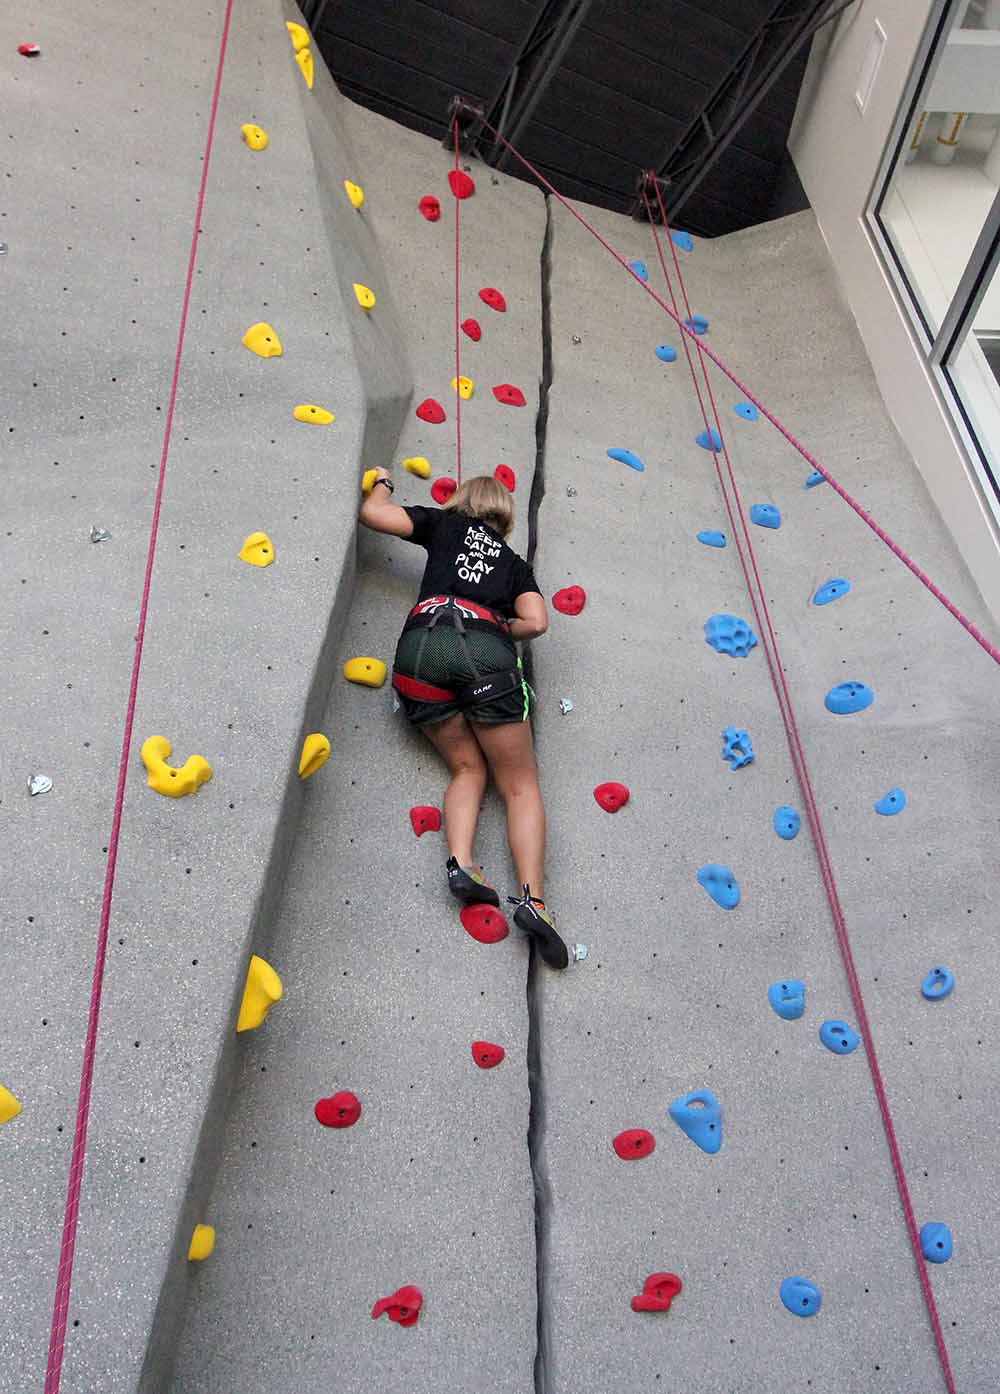 UNK student Erin Nelson makes her way up the new 30-foot rock climbing wall, which is part of the student fitness area inside the Wellness Center. (Photo by Todd Gottula/UNK Communications)